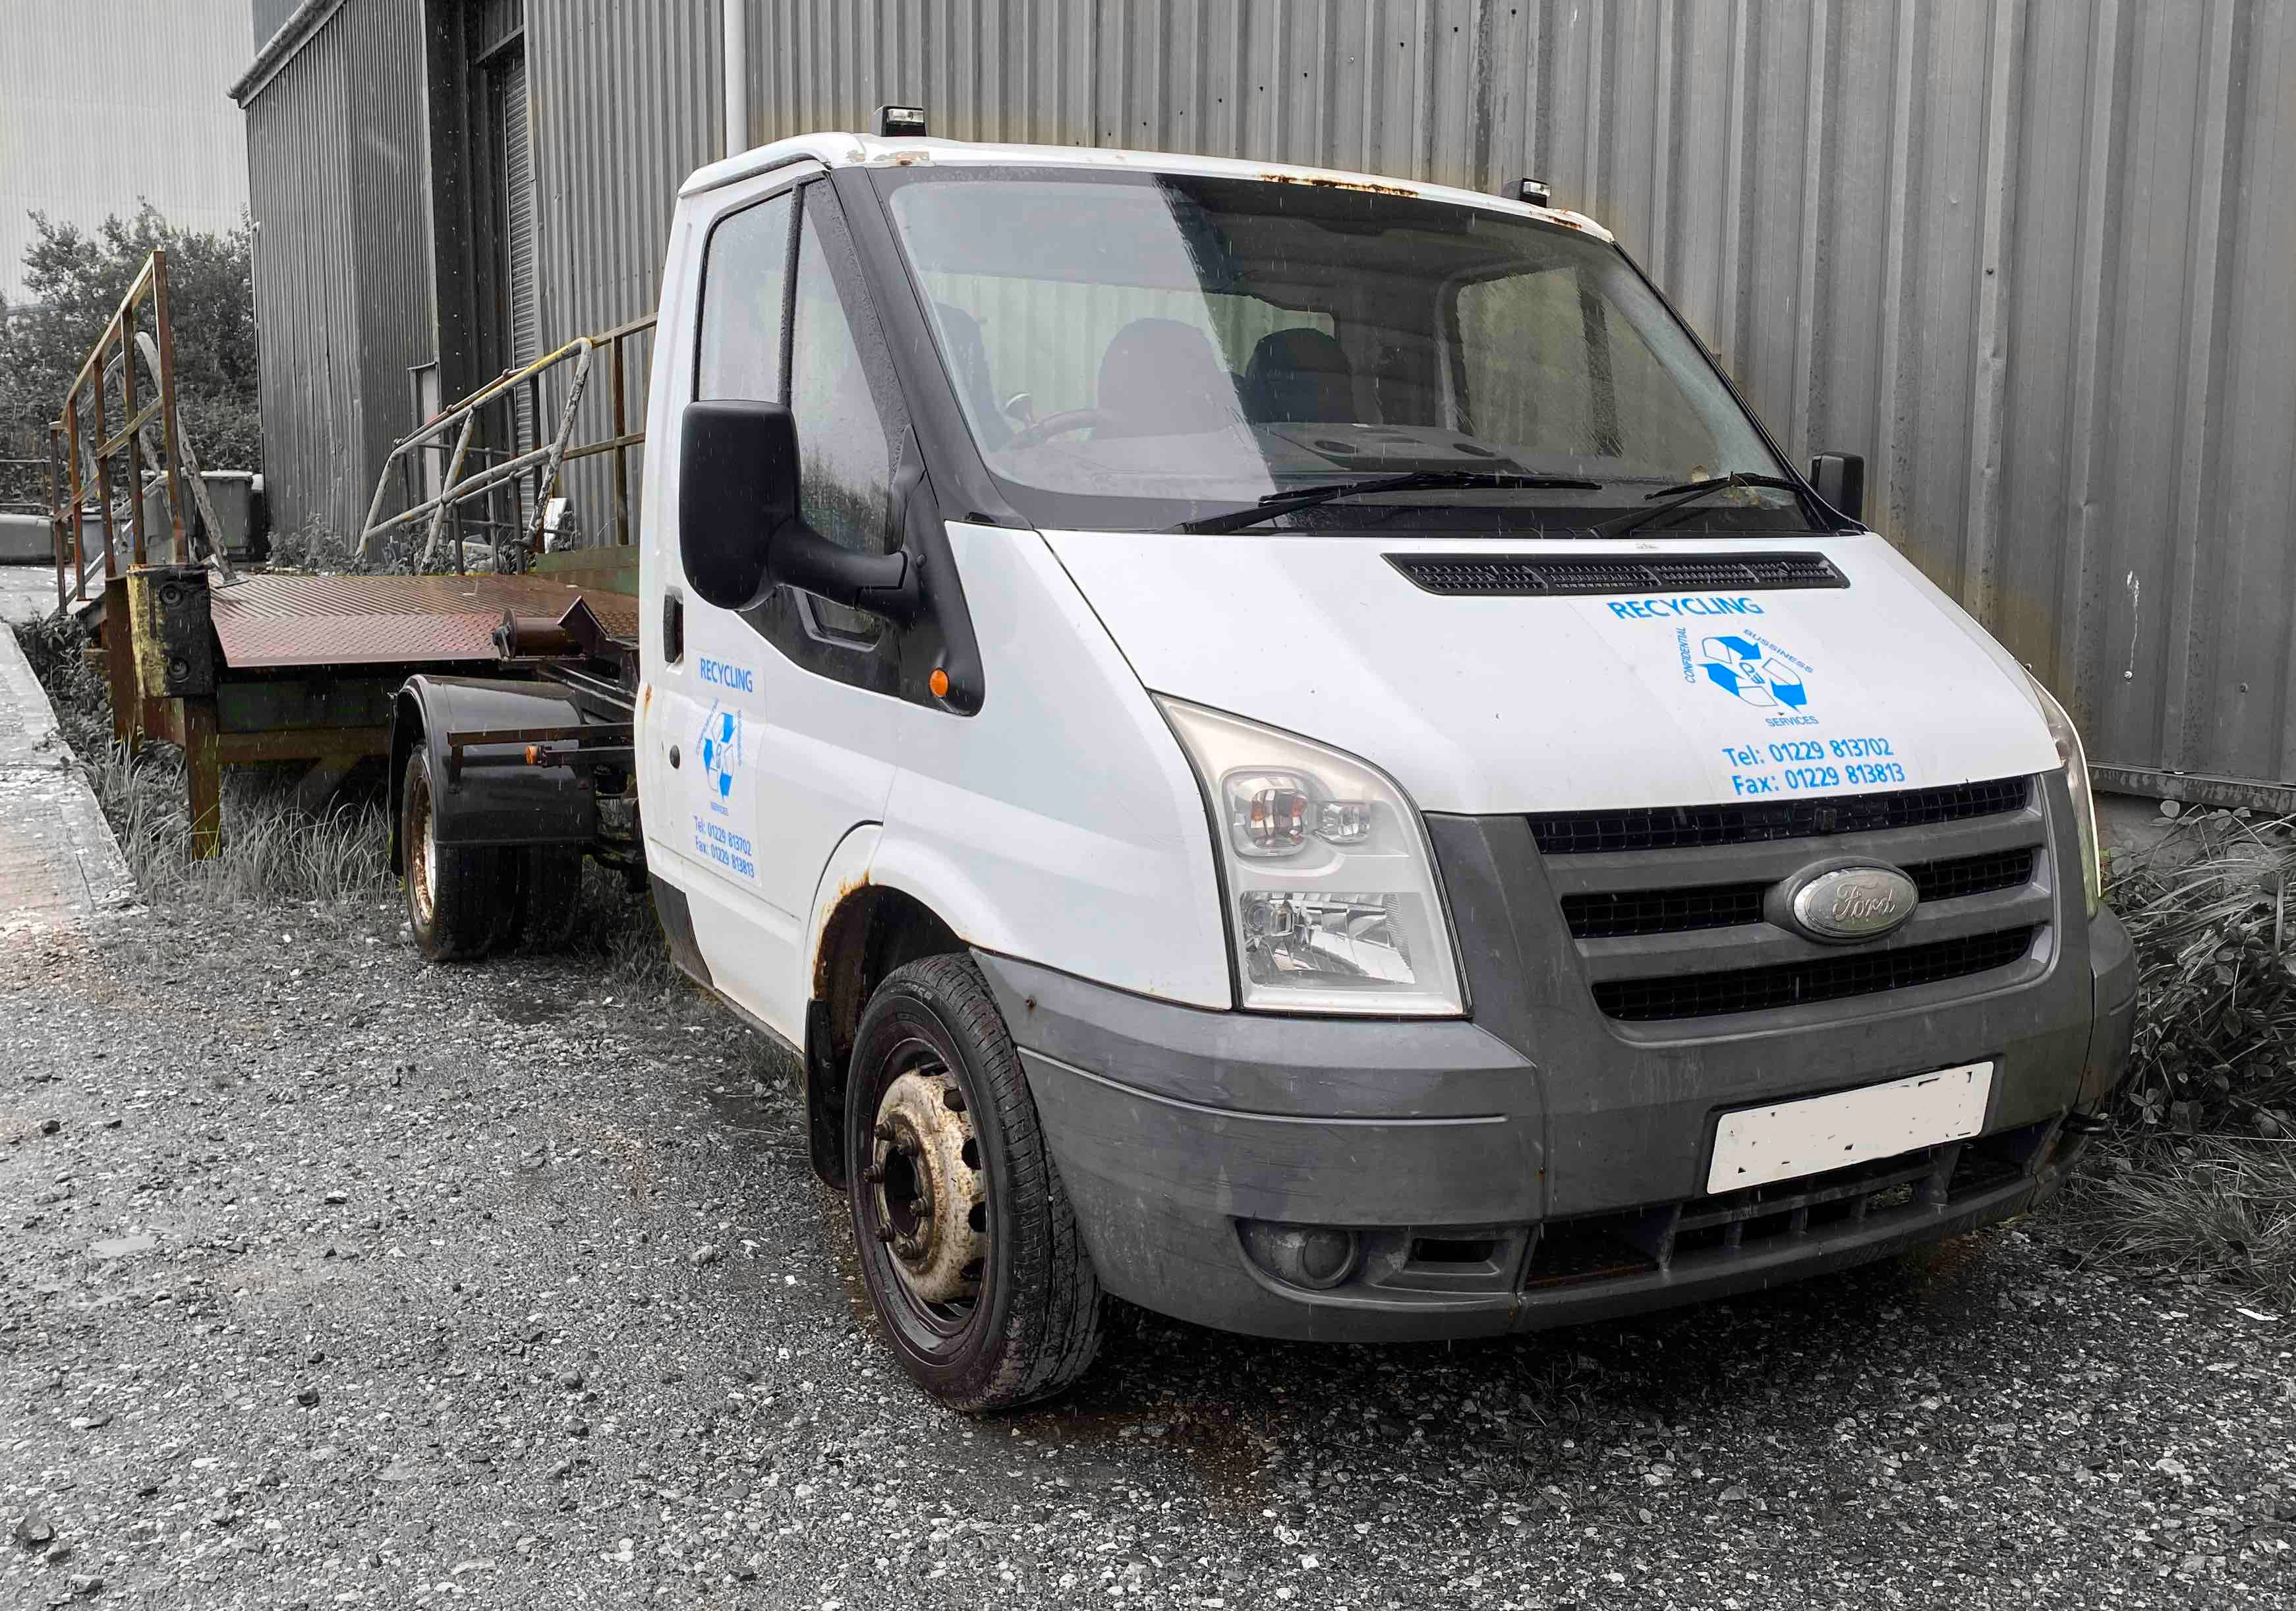 Ford / NTM Transit / Hook Loader VEHICLE -